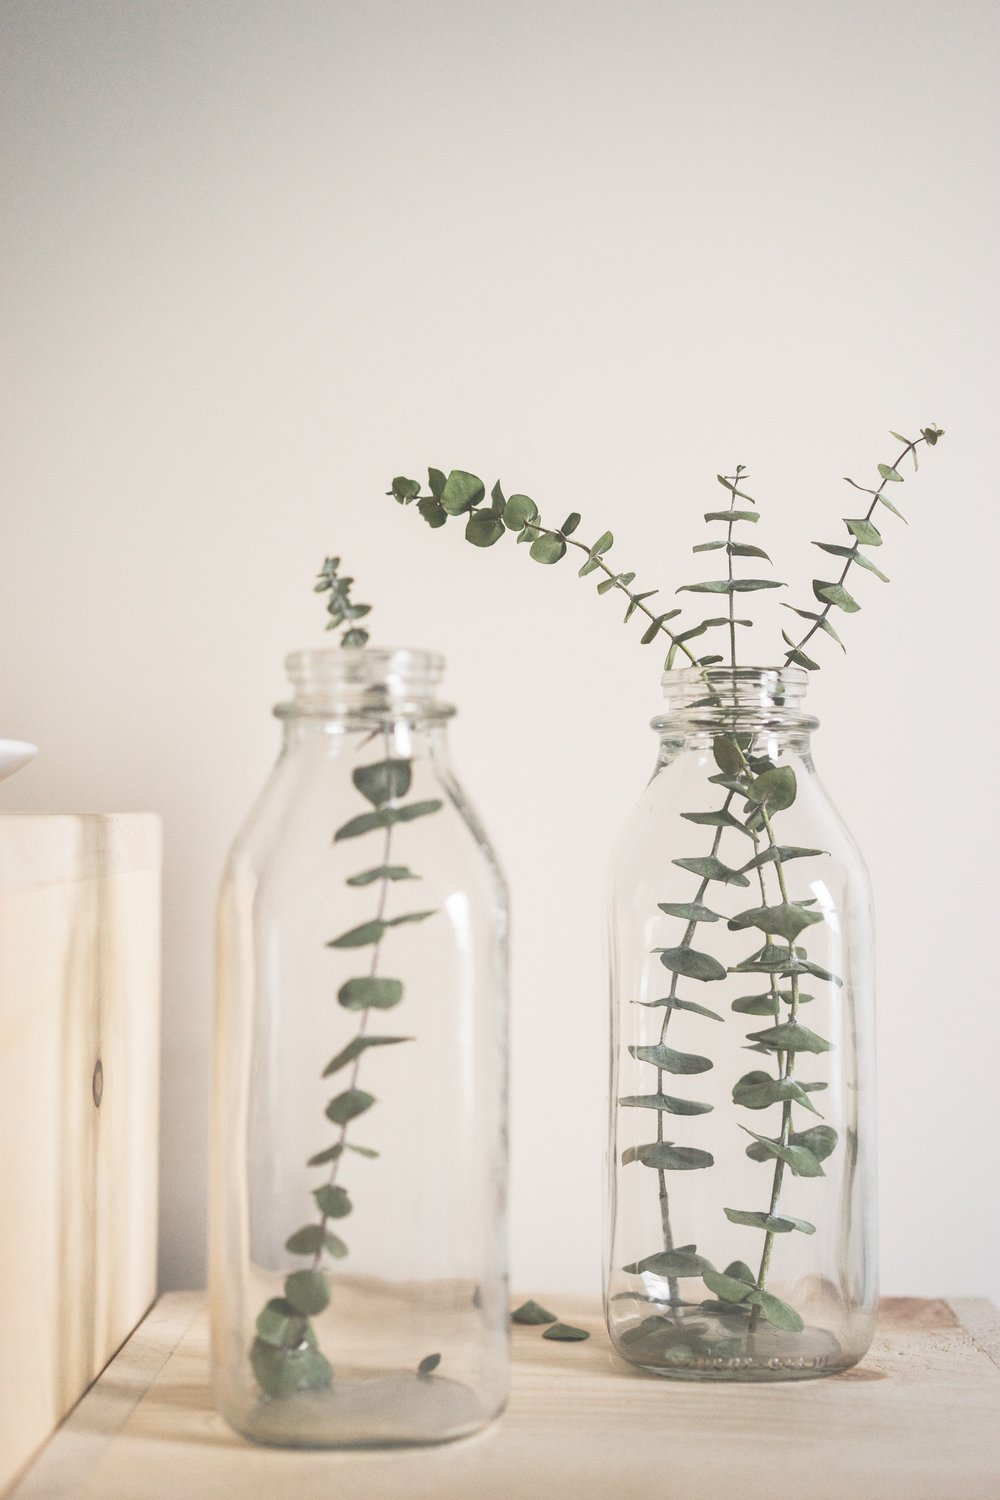 LaRolf dried eucalyptus branches for sale online